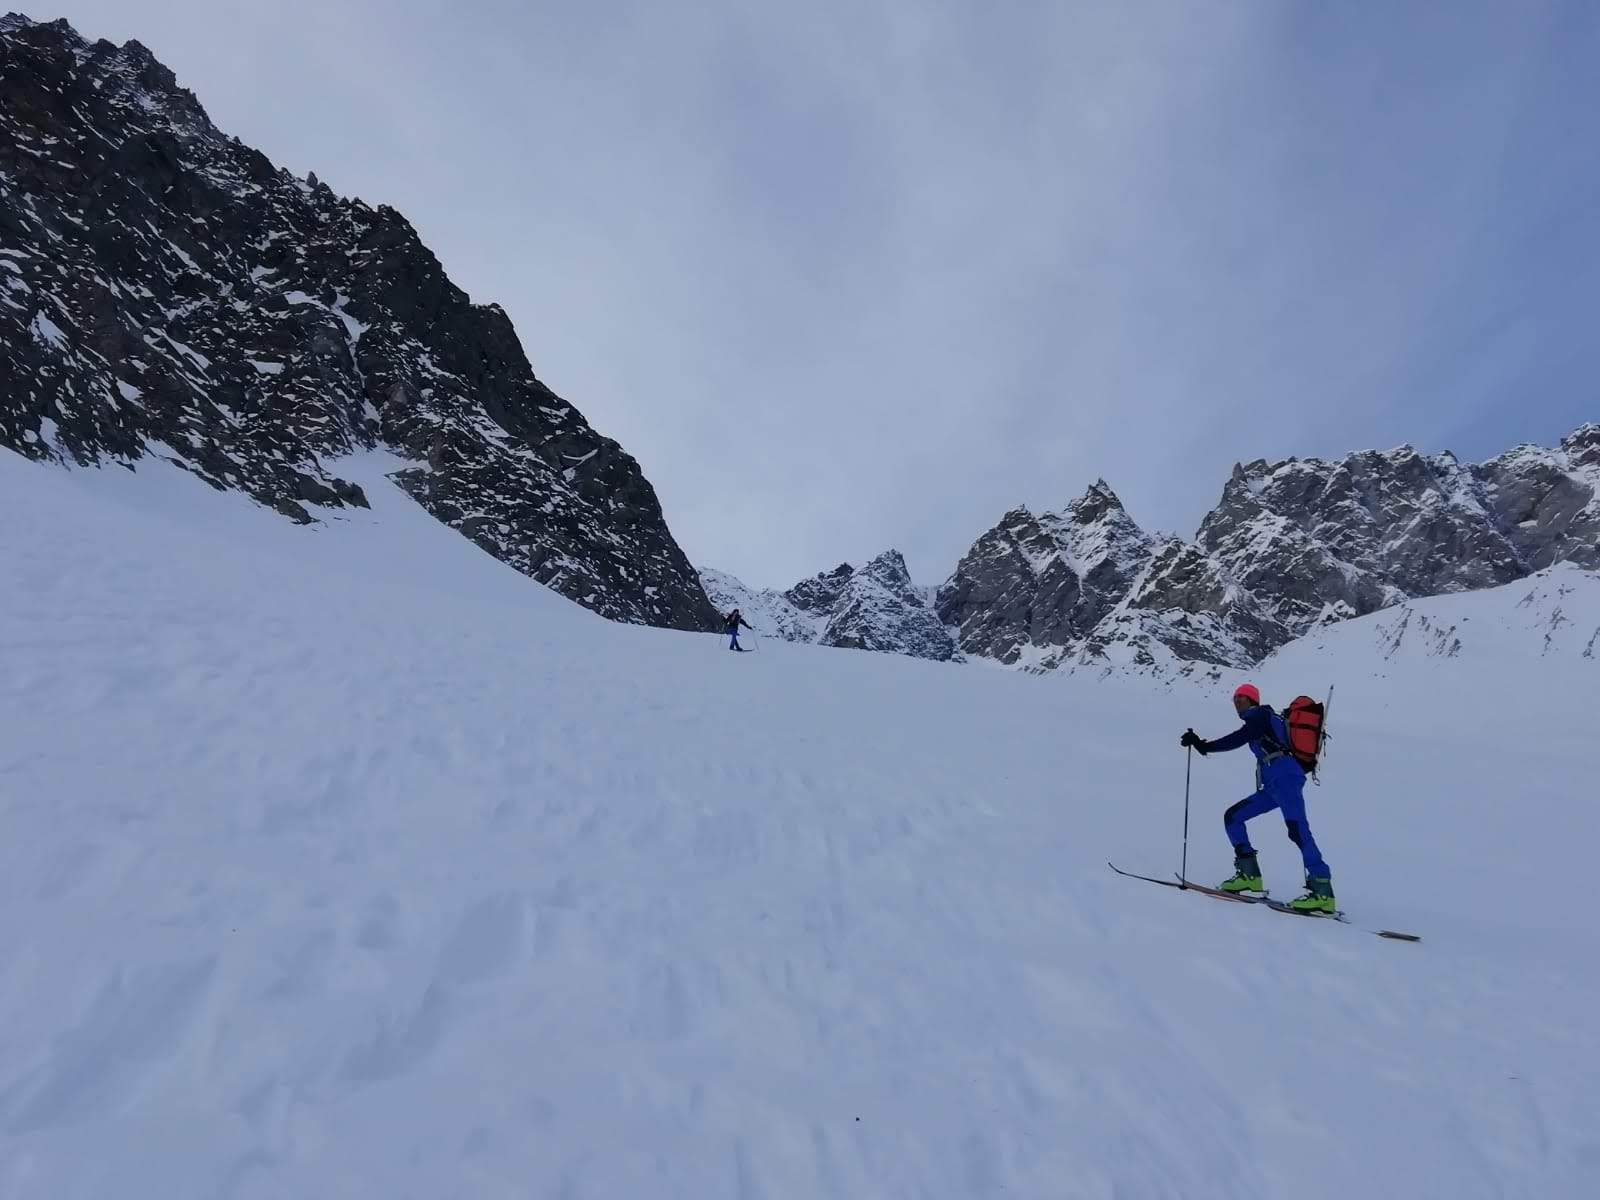 Ecot (Dent d') quota 3080 m Canale dell'Ecot 2020-01-19